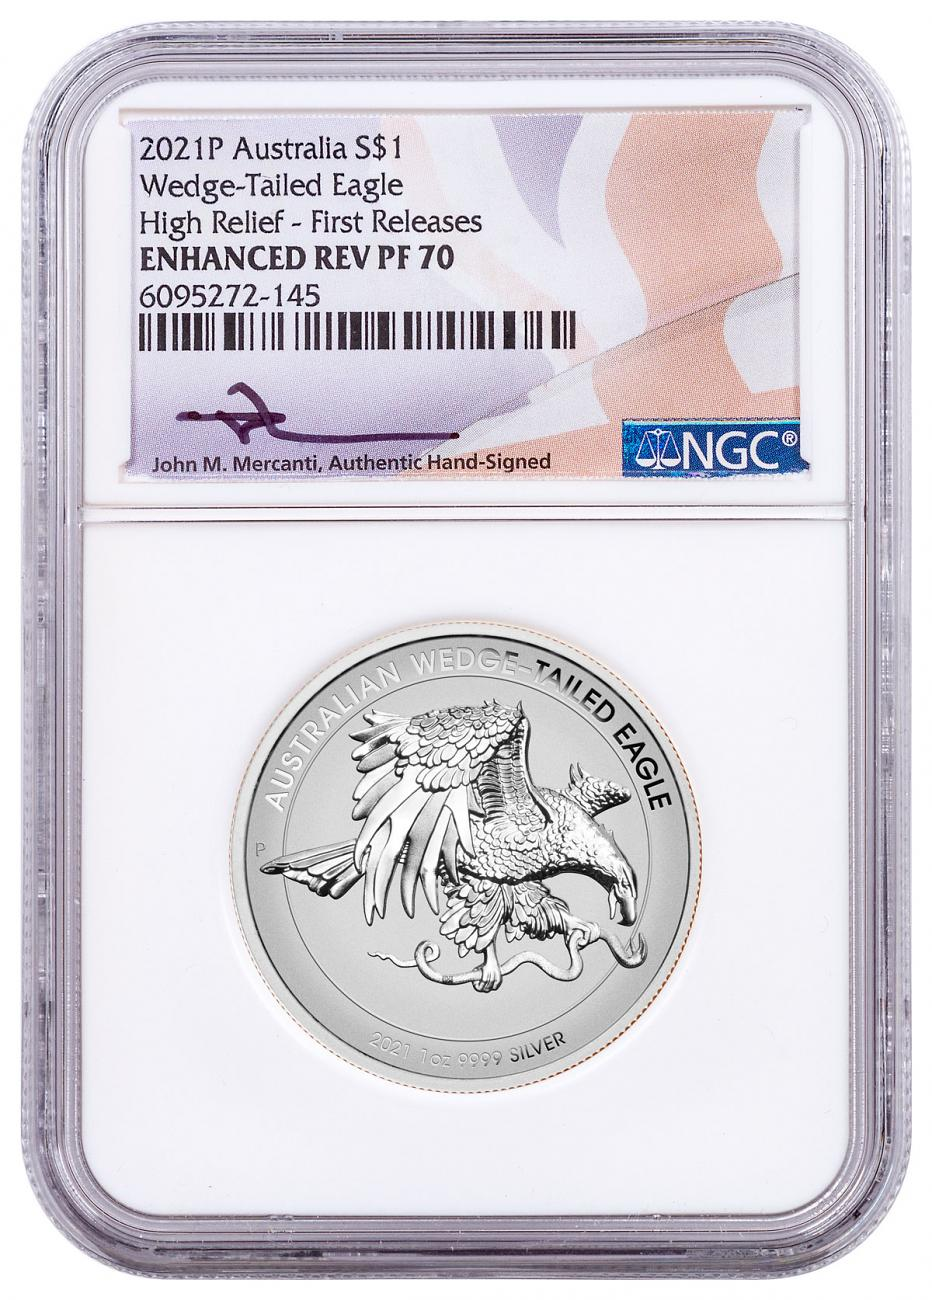 2021-P Australia 1 oz High Relief Silver Wedge-Tailed Eagle - Enhanced Reverse Proof $1 Coin NGC Rev PF70 FR White Core Holder Mercanti Signed Flag Label